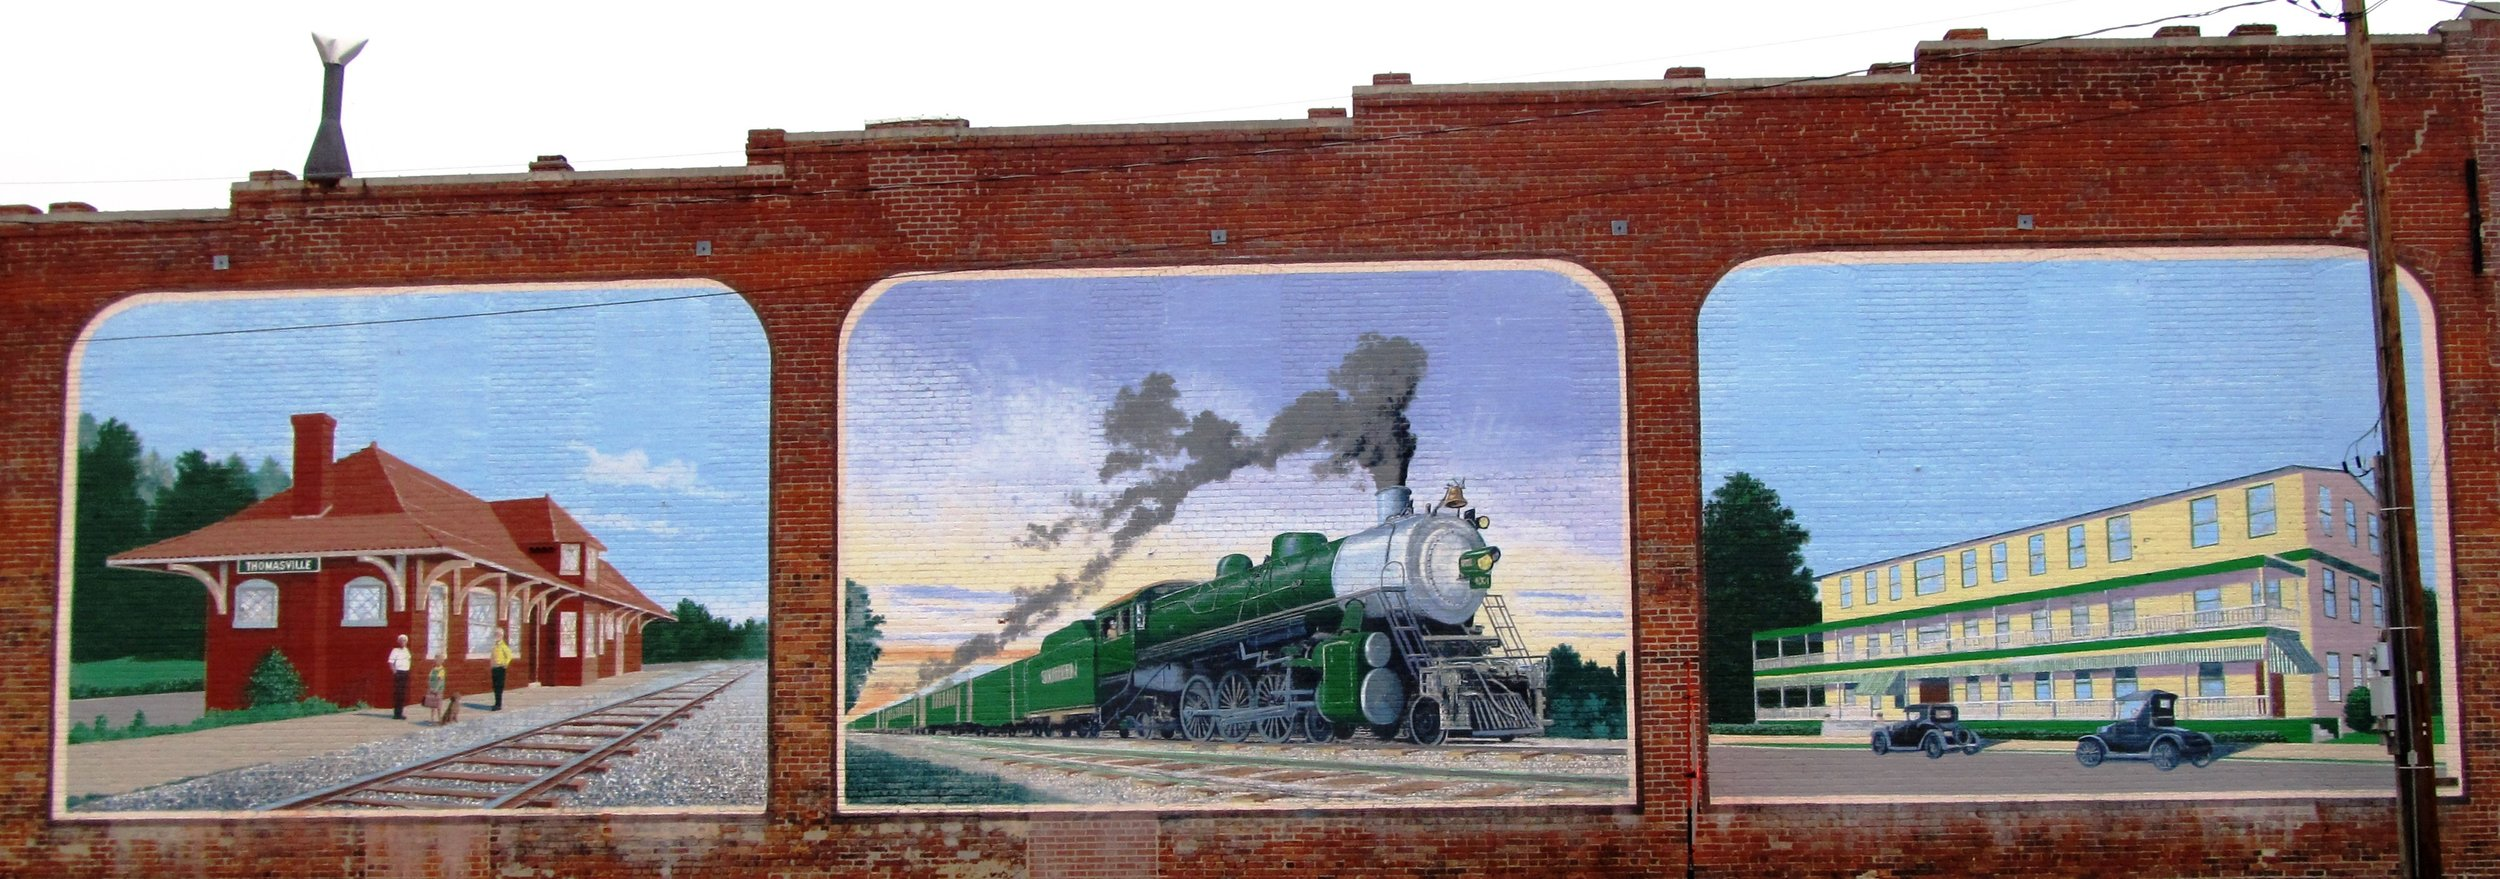 Train Station Mural Enhanced and Cropped.jpg